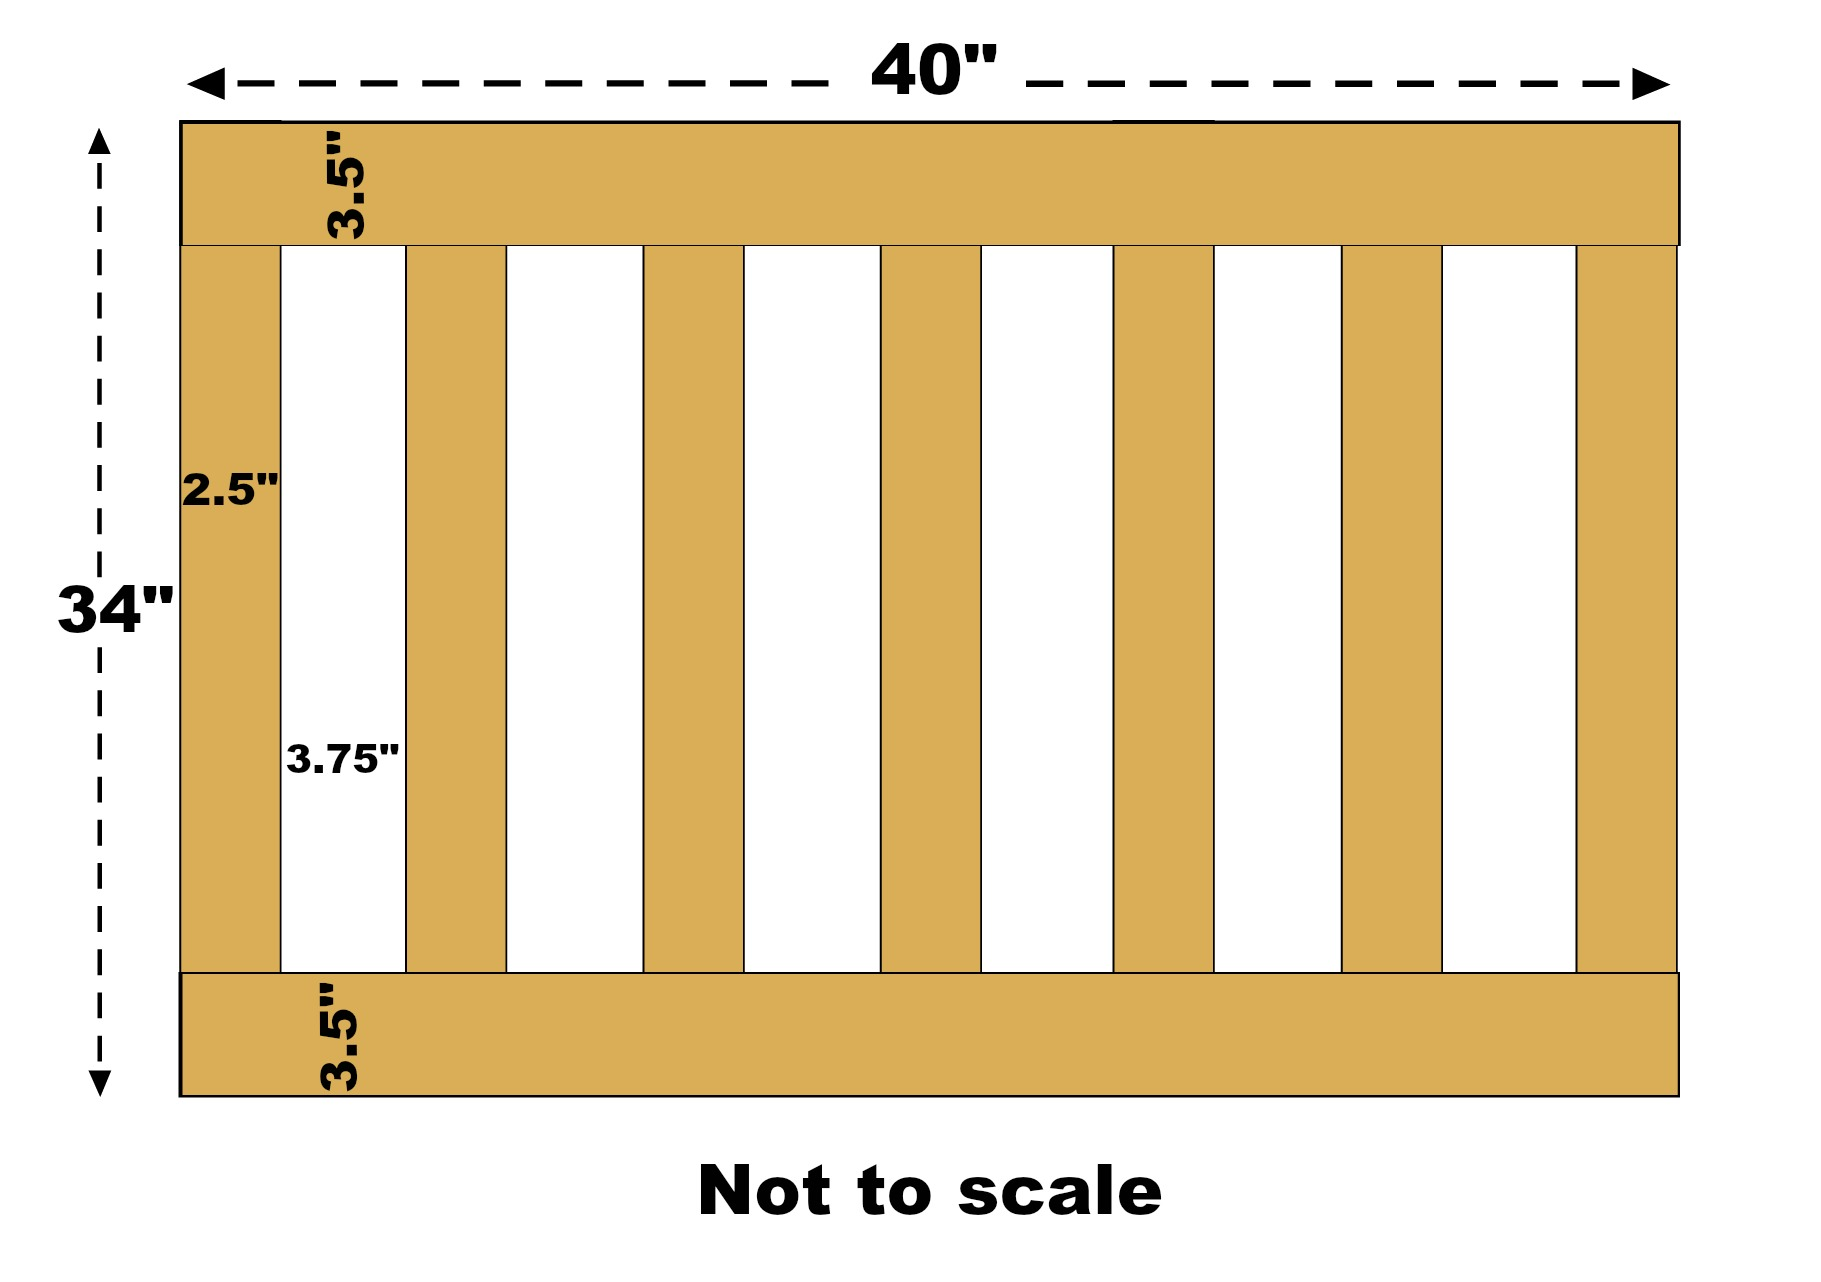 Board And Batten Dimensions Baby Gate The Craft Crib